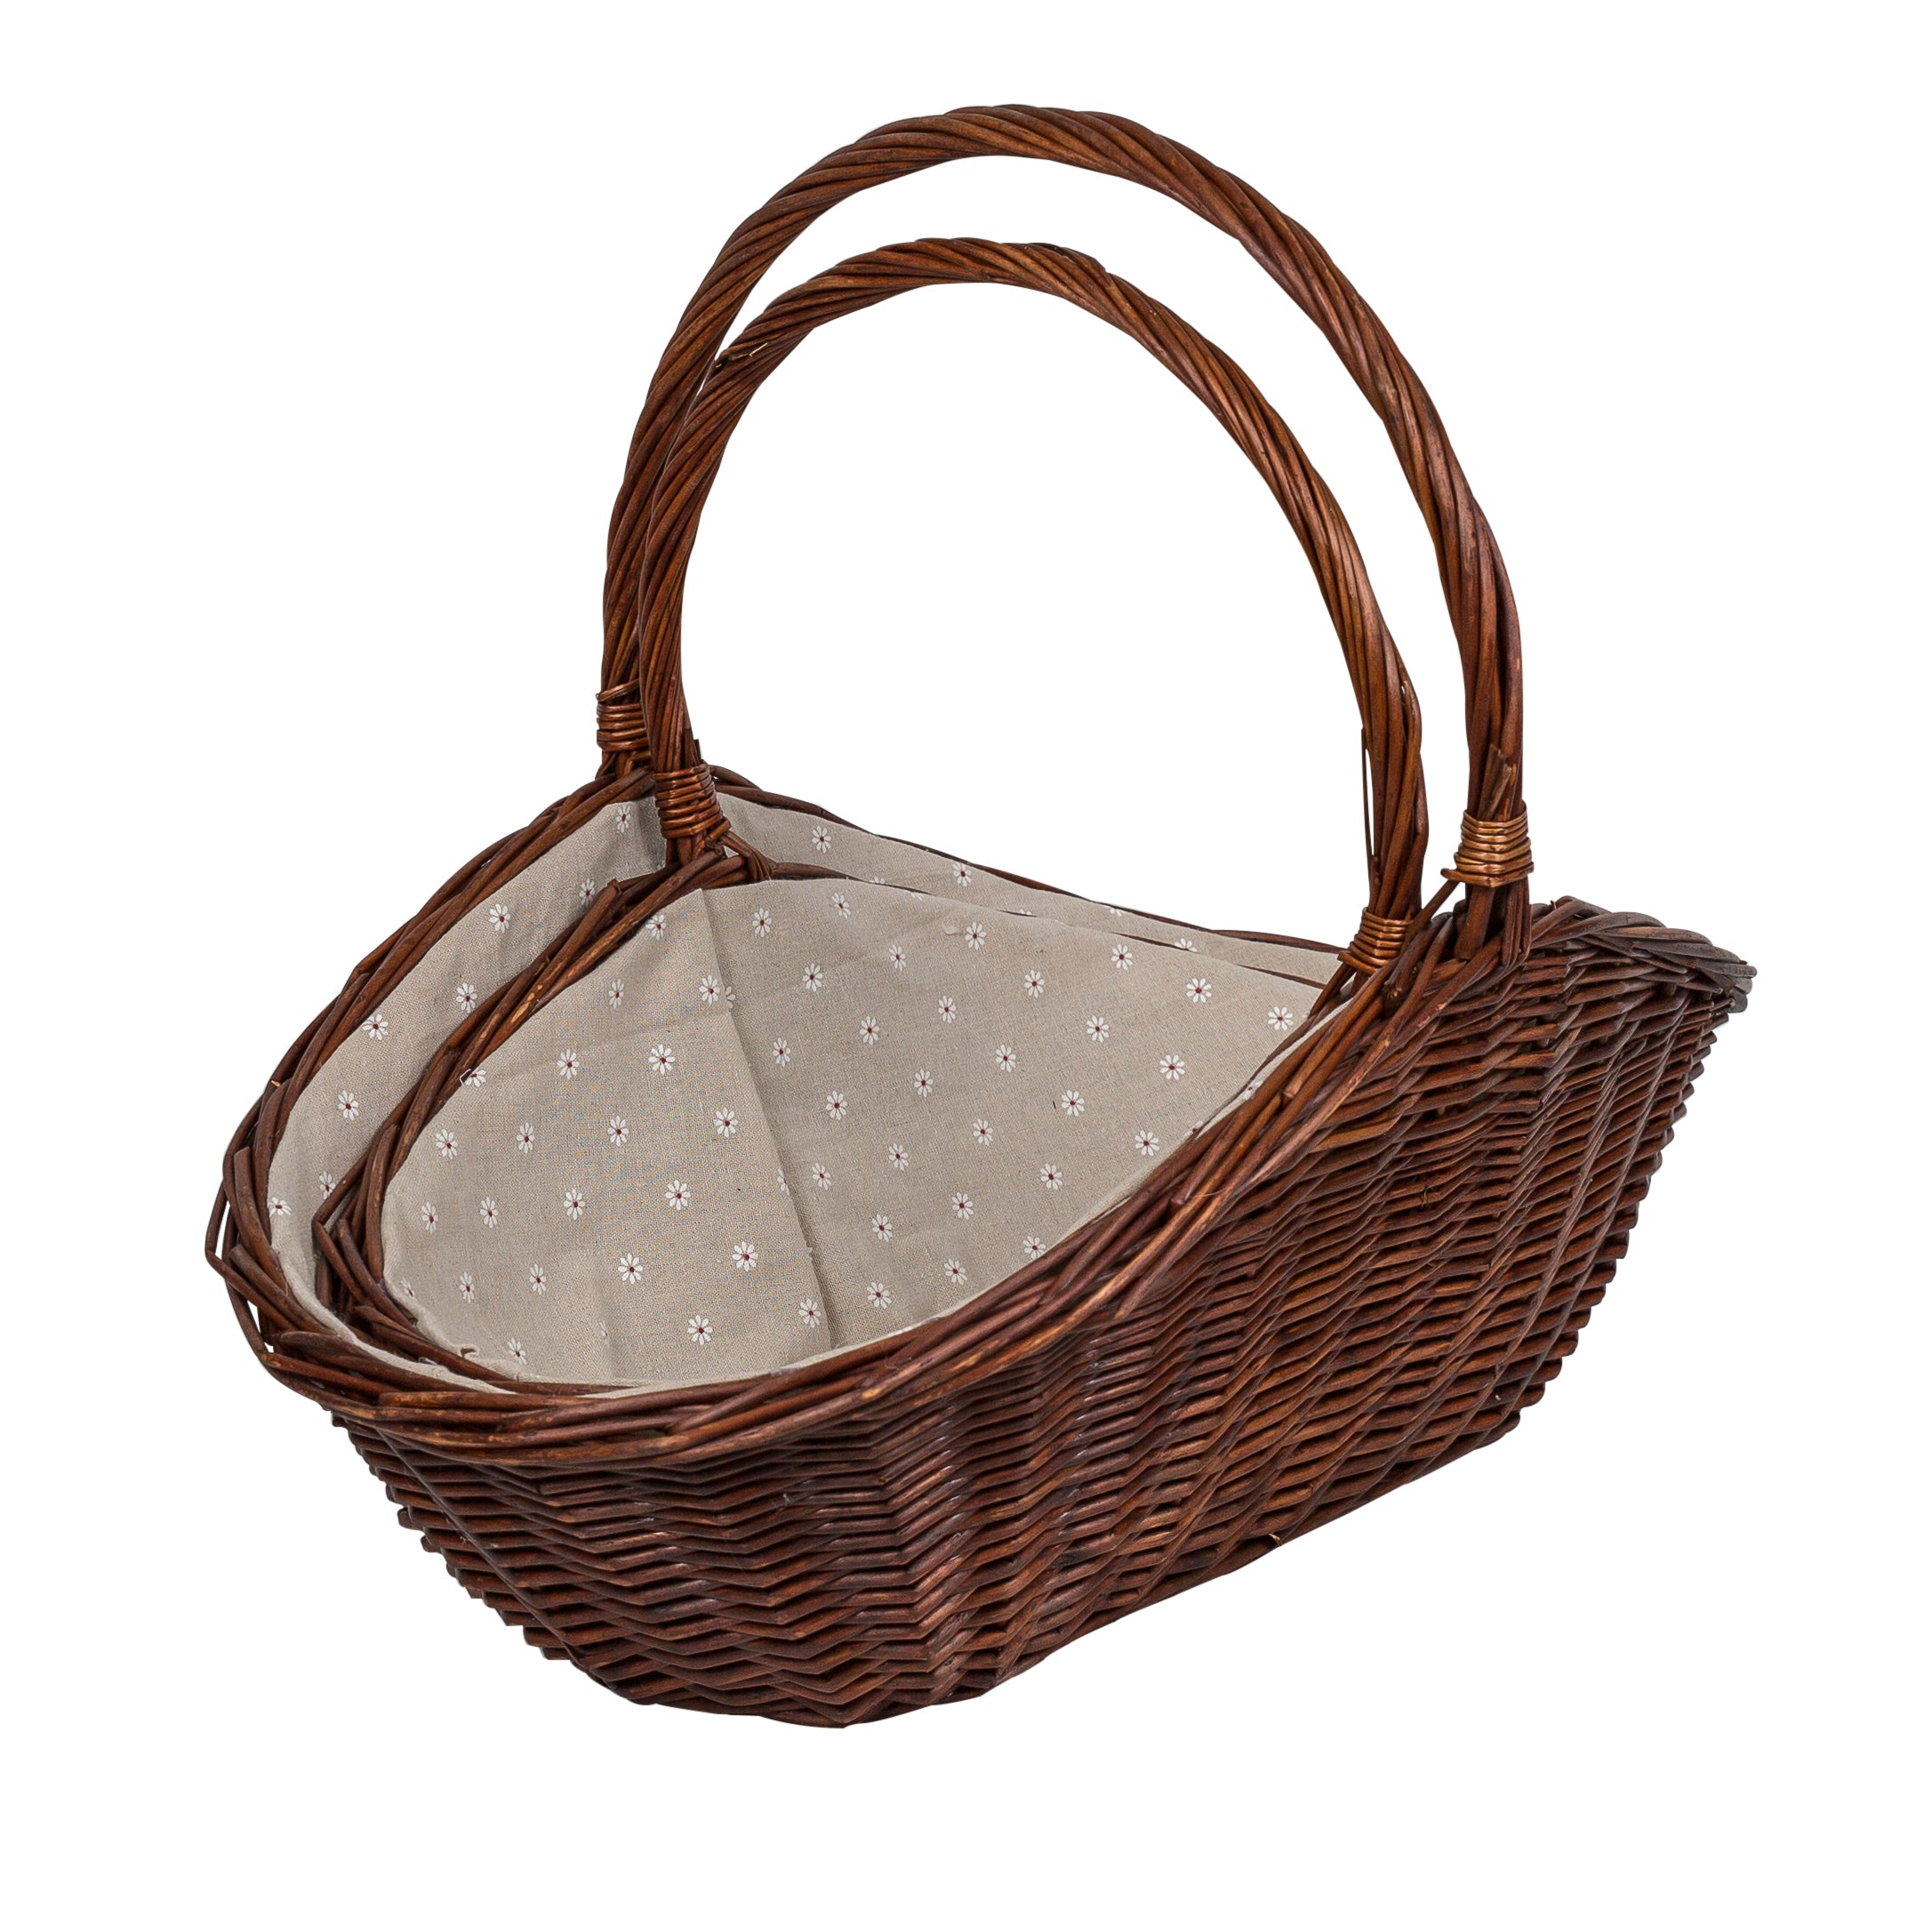 Image of a large and small wicker basket as a set